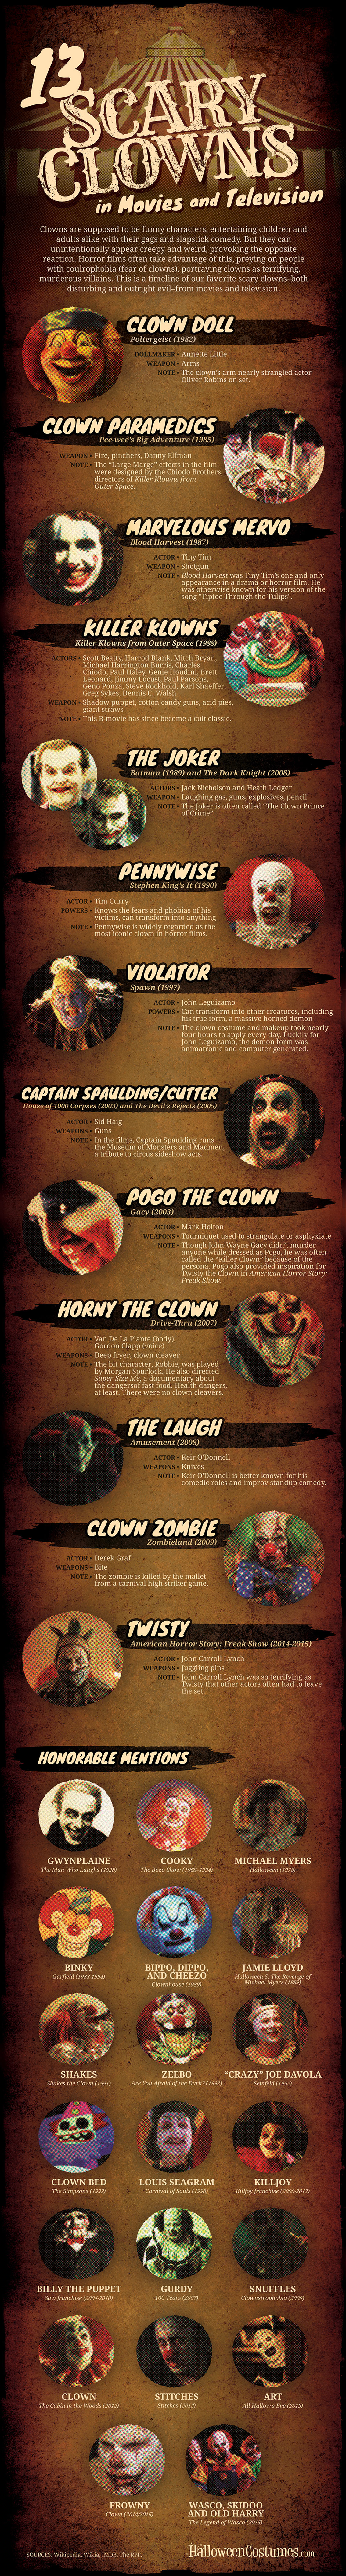 List of Scary Clowns in Television and Movies Infographic